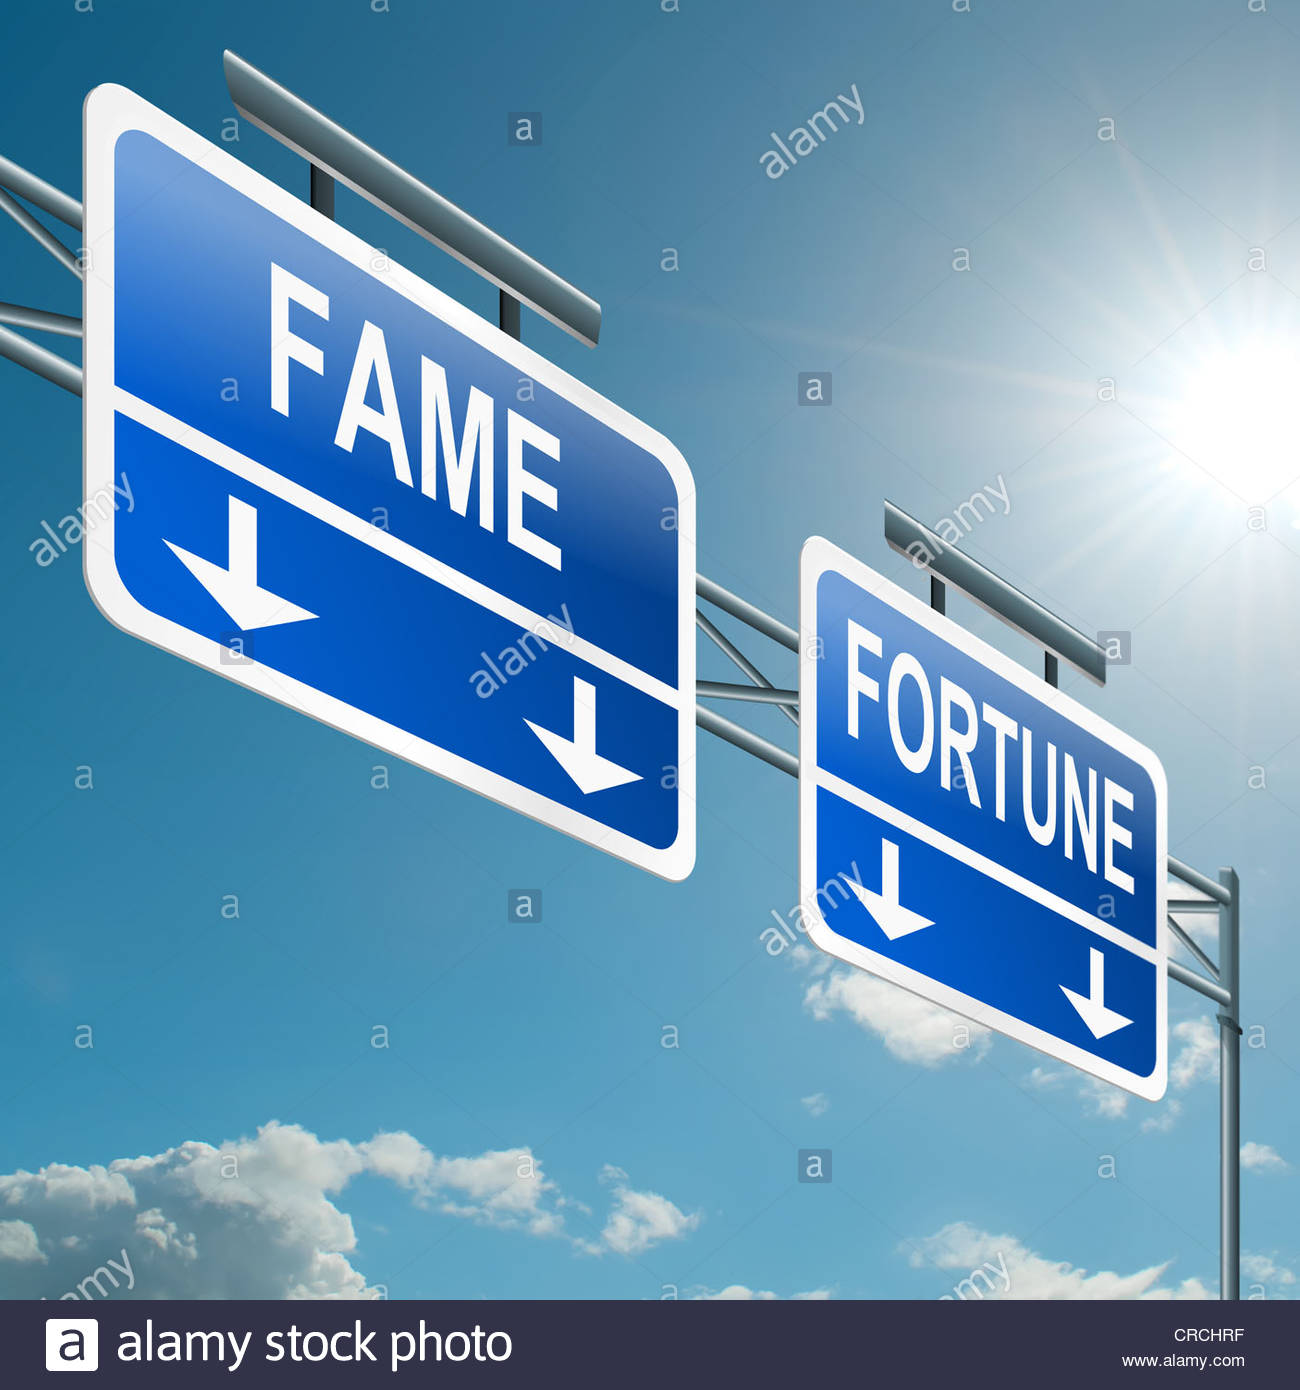 fame-and-fortune-CRCHRF